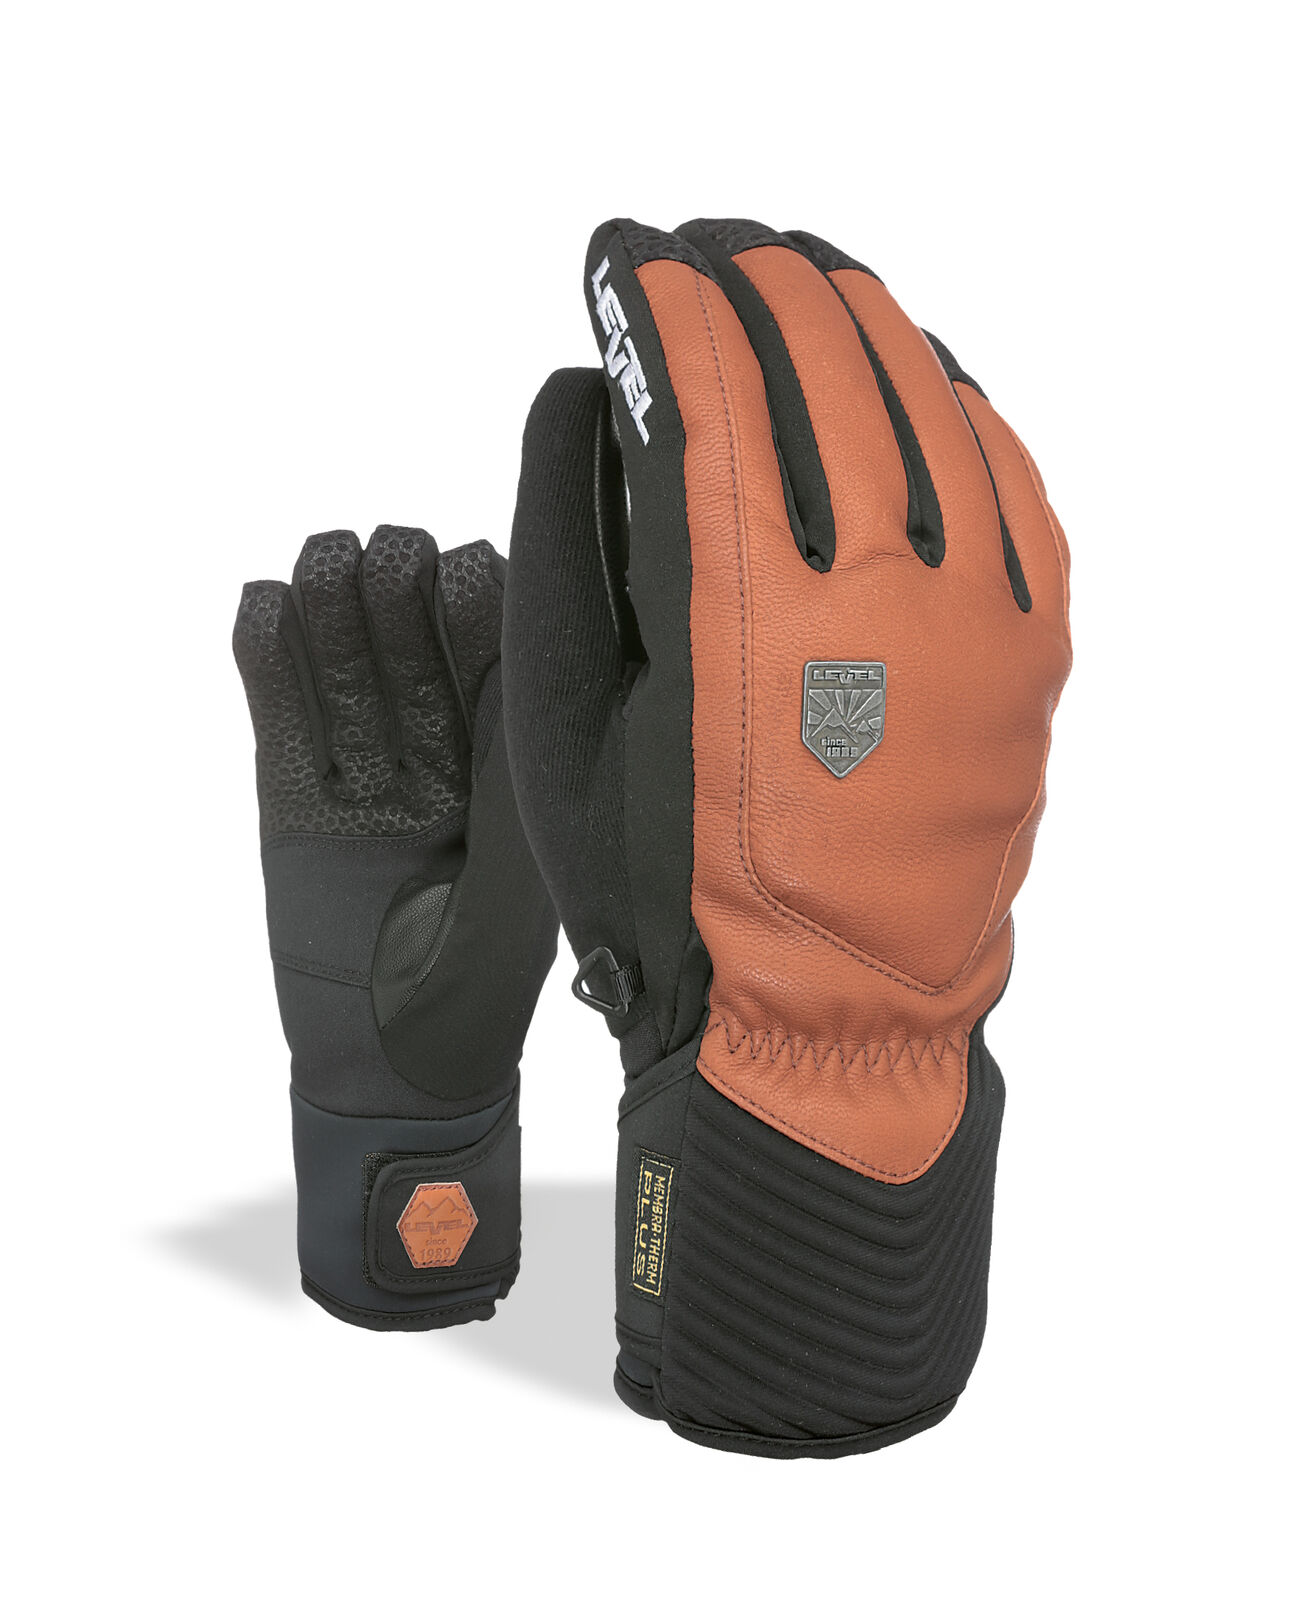 Level Guantes Renegado Marrón Impermeable Transpirable Cálidos